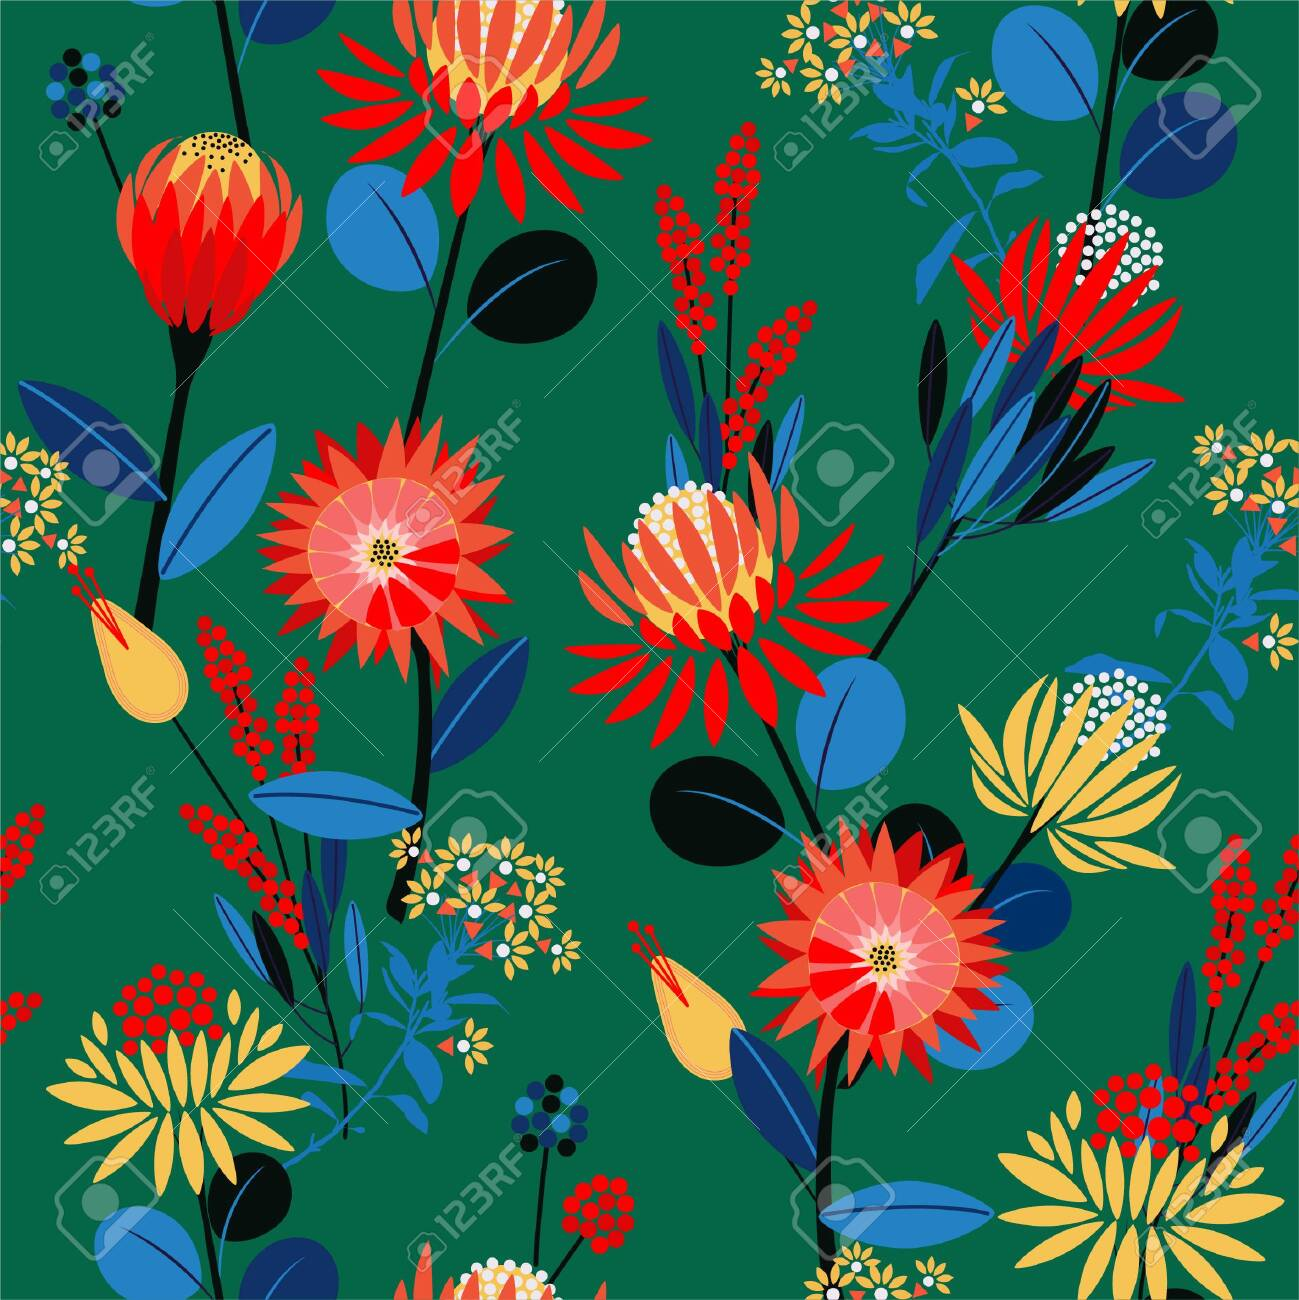 Colourful geometric gardens flower blooming florals mood seamless pattern in - 150852434